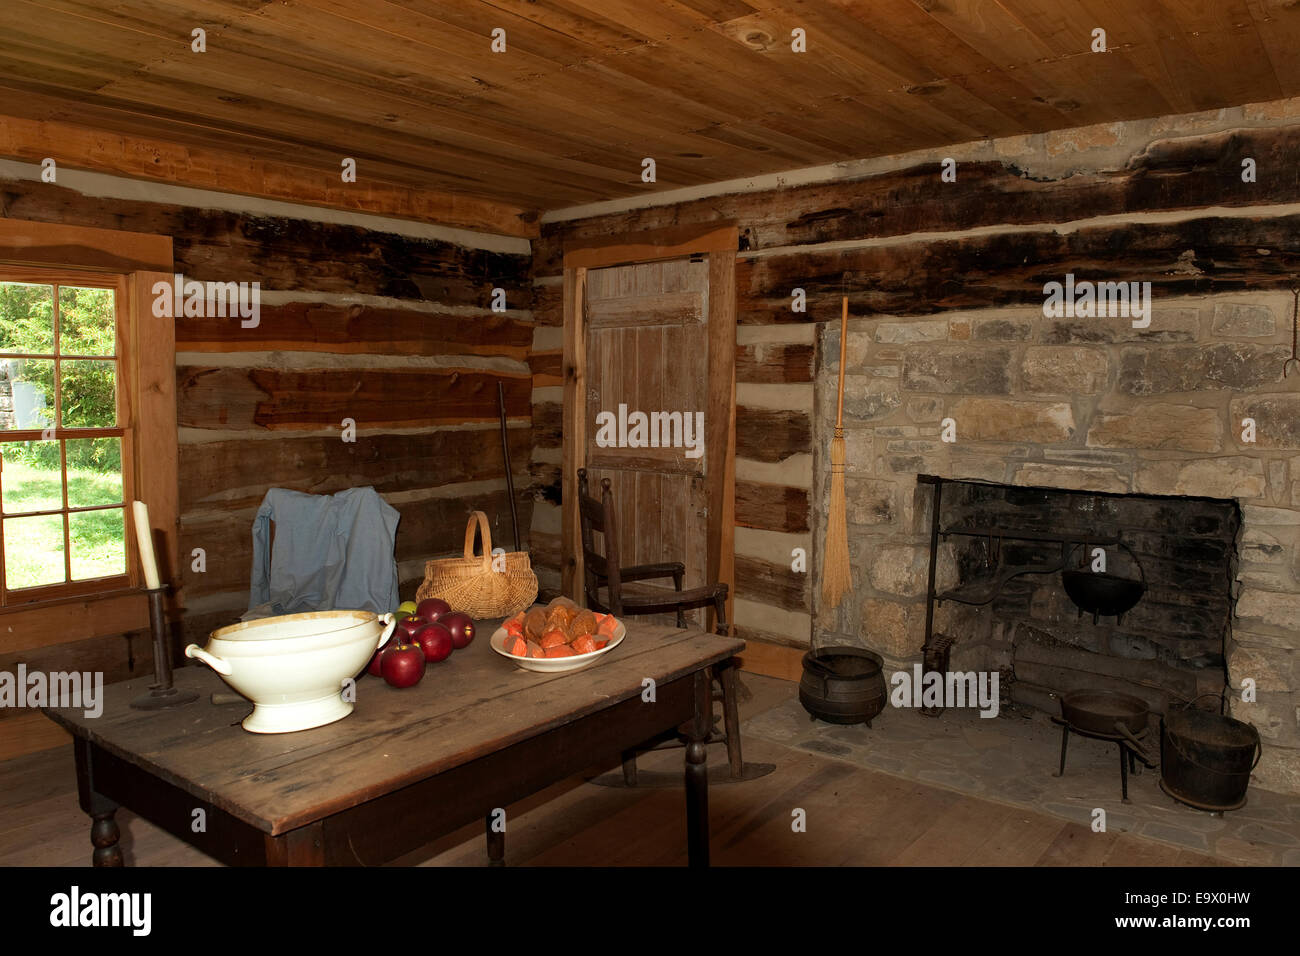 Interior of  the Slave cabin Belle Meade Mansion Nashville Tennessee - Stock Image